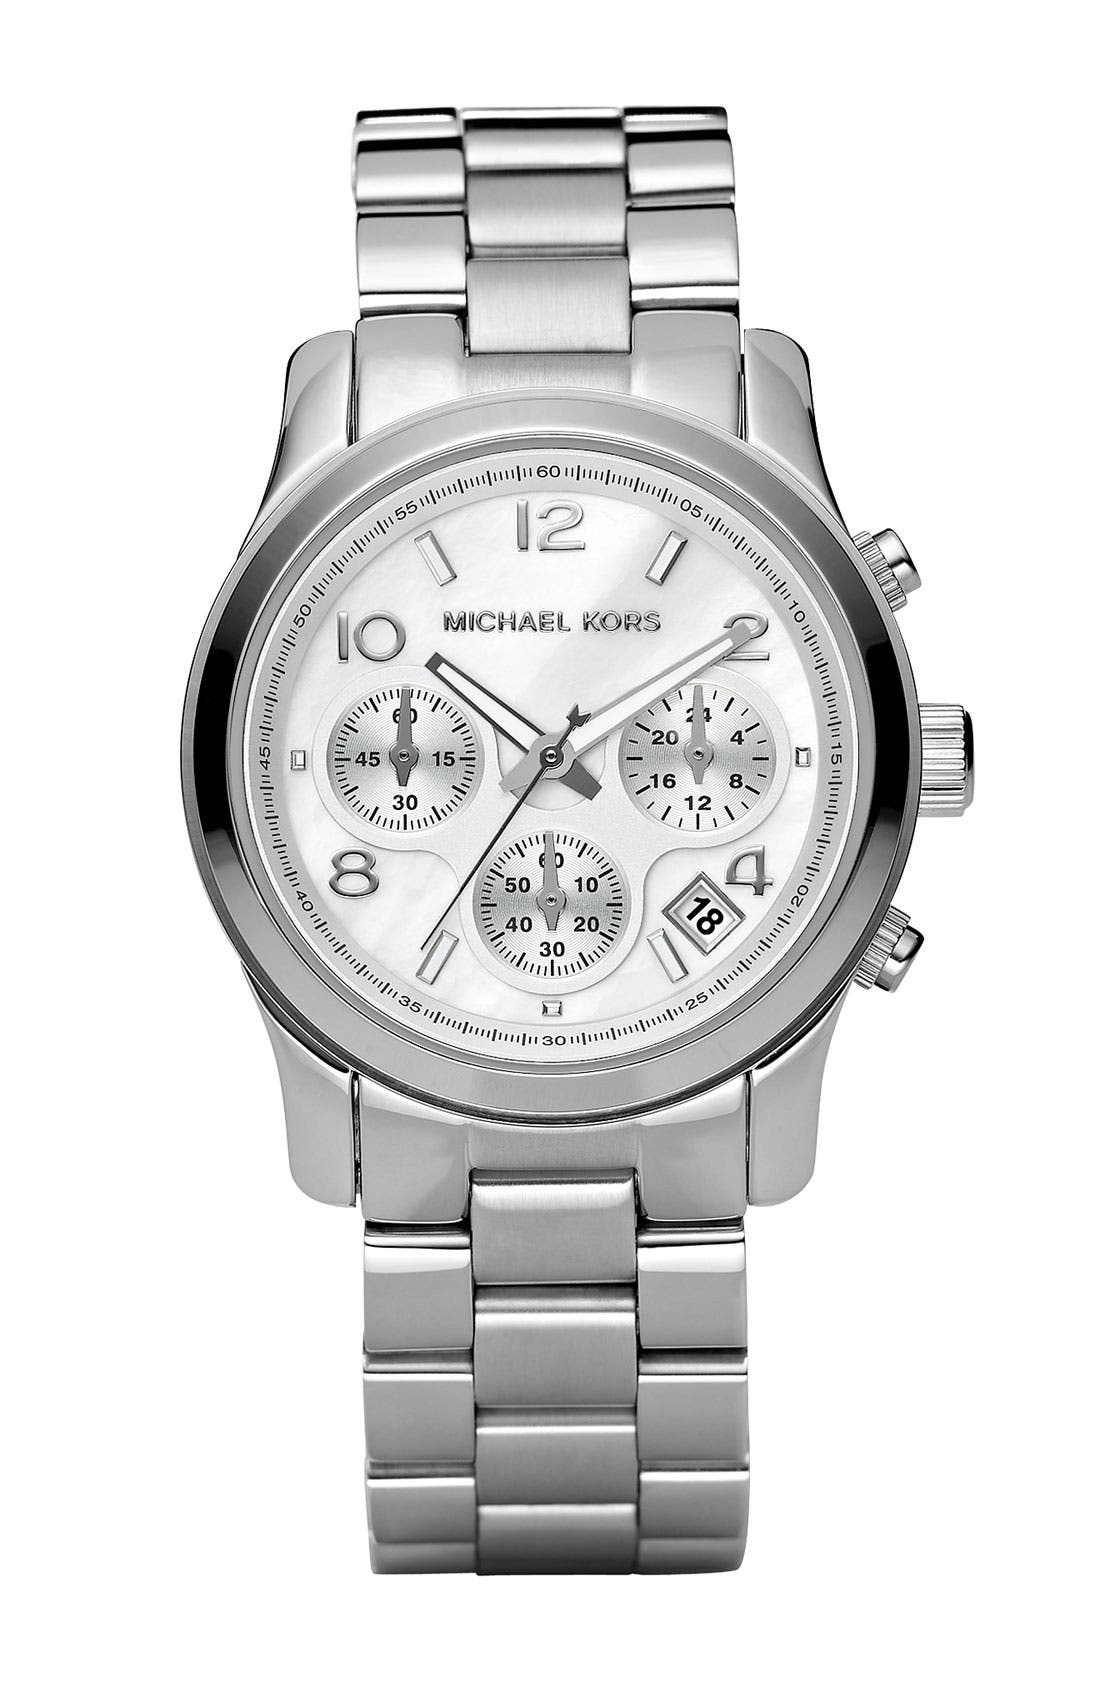 Main Image - Michael Kors 'Runway' Mother of Pearl Chronograph Watch, 38mm